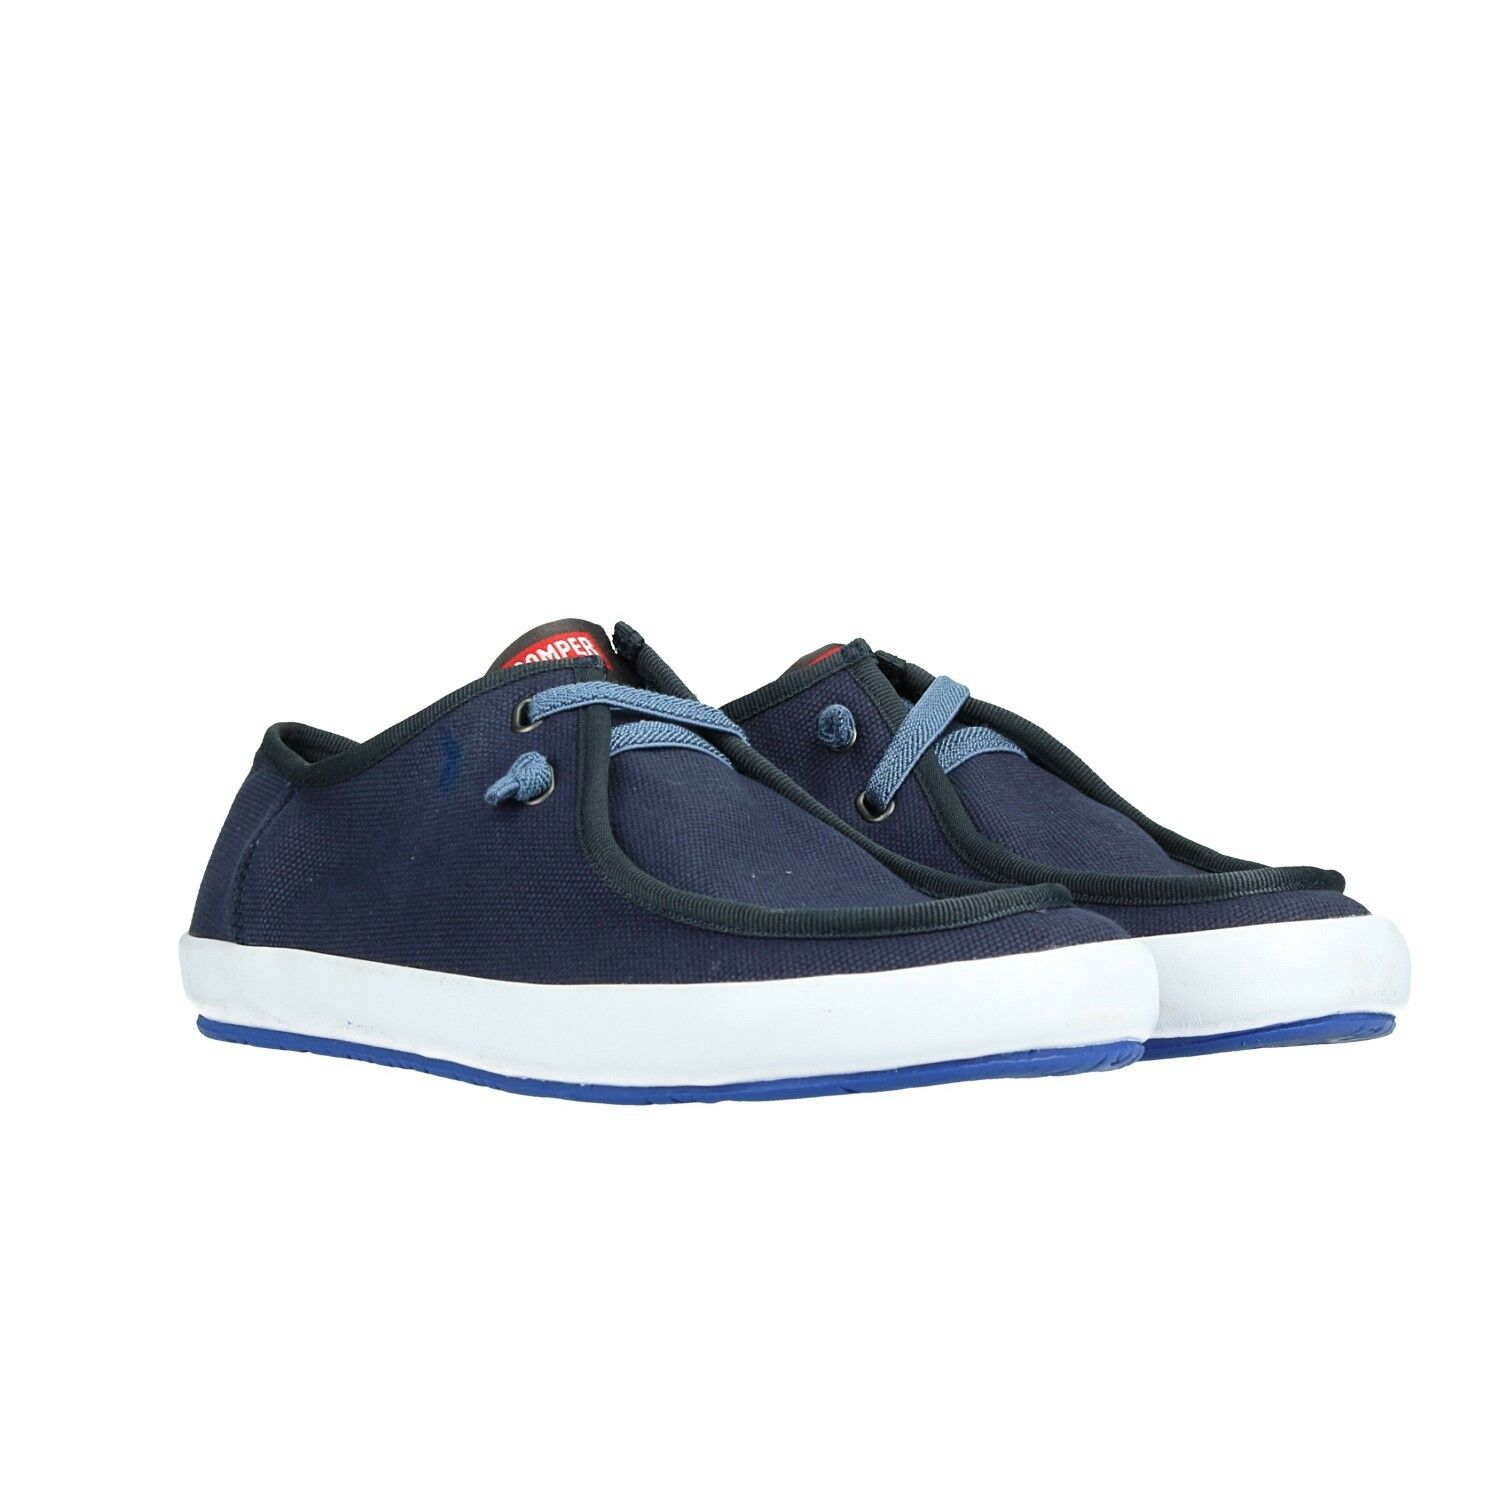 Camper Peu Rambla, Zapatilla para women. size 41. Poco Uso.Flexible.color blue